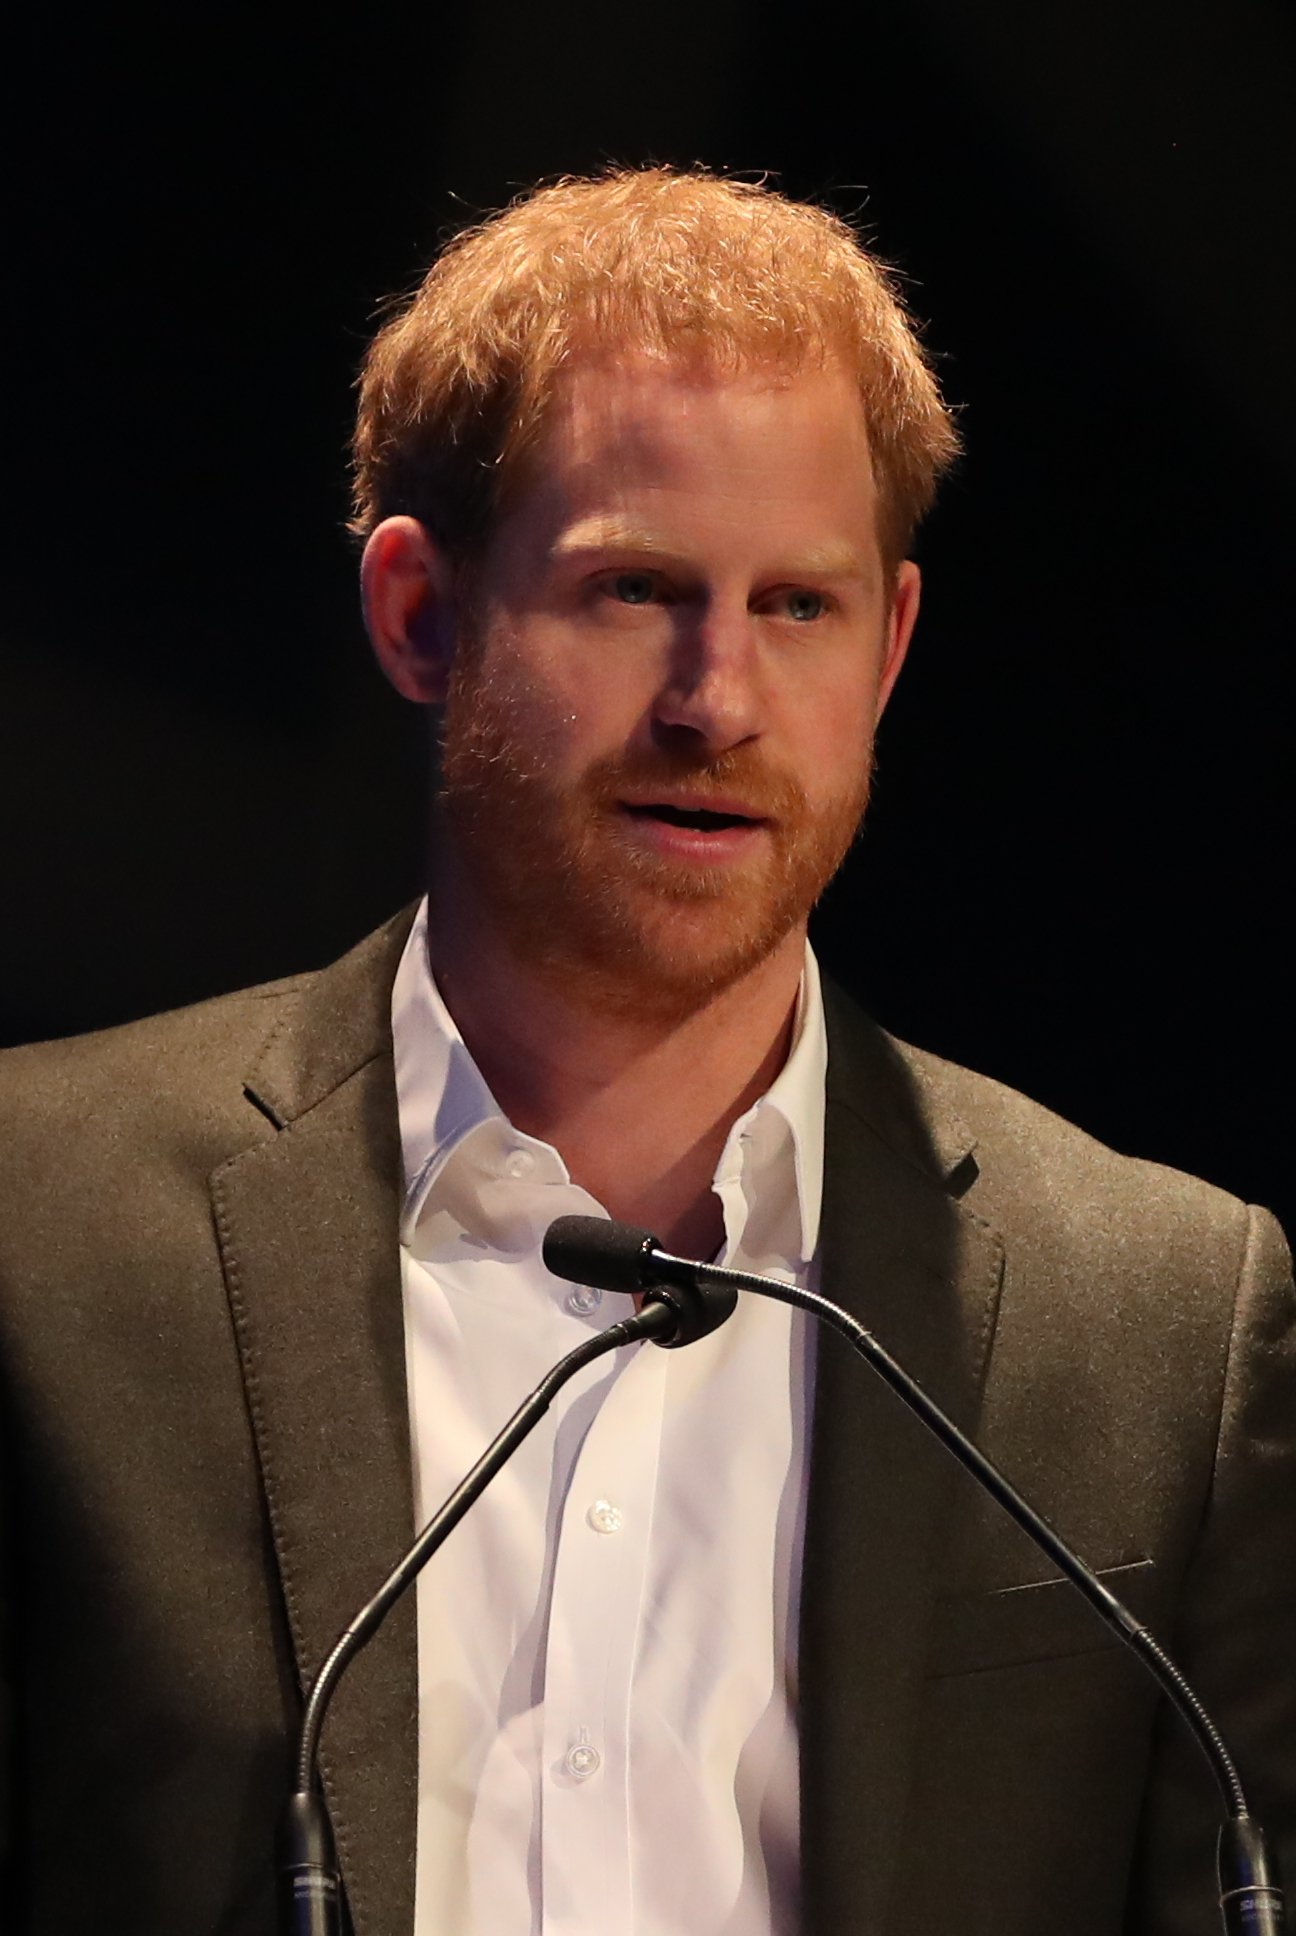 Prince Harry, Duke of Sussex speaks as he attends a sustainable tourism summit at the Edinburgh International Conference Centre on February 26, 2020 in Edinburgh, Scotland. | Source: Getty Images